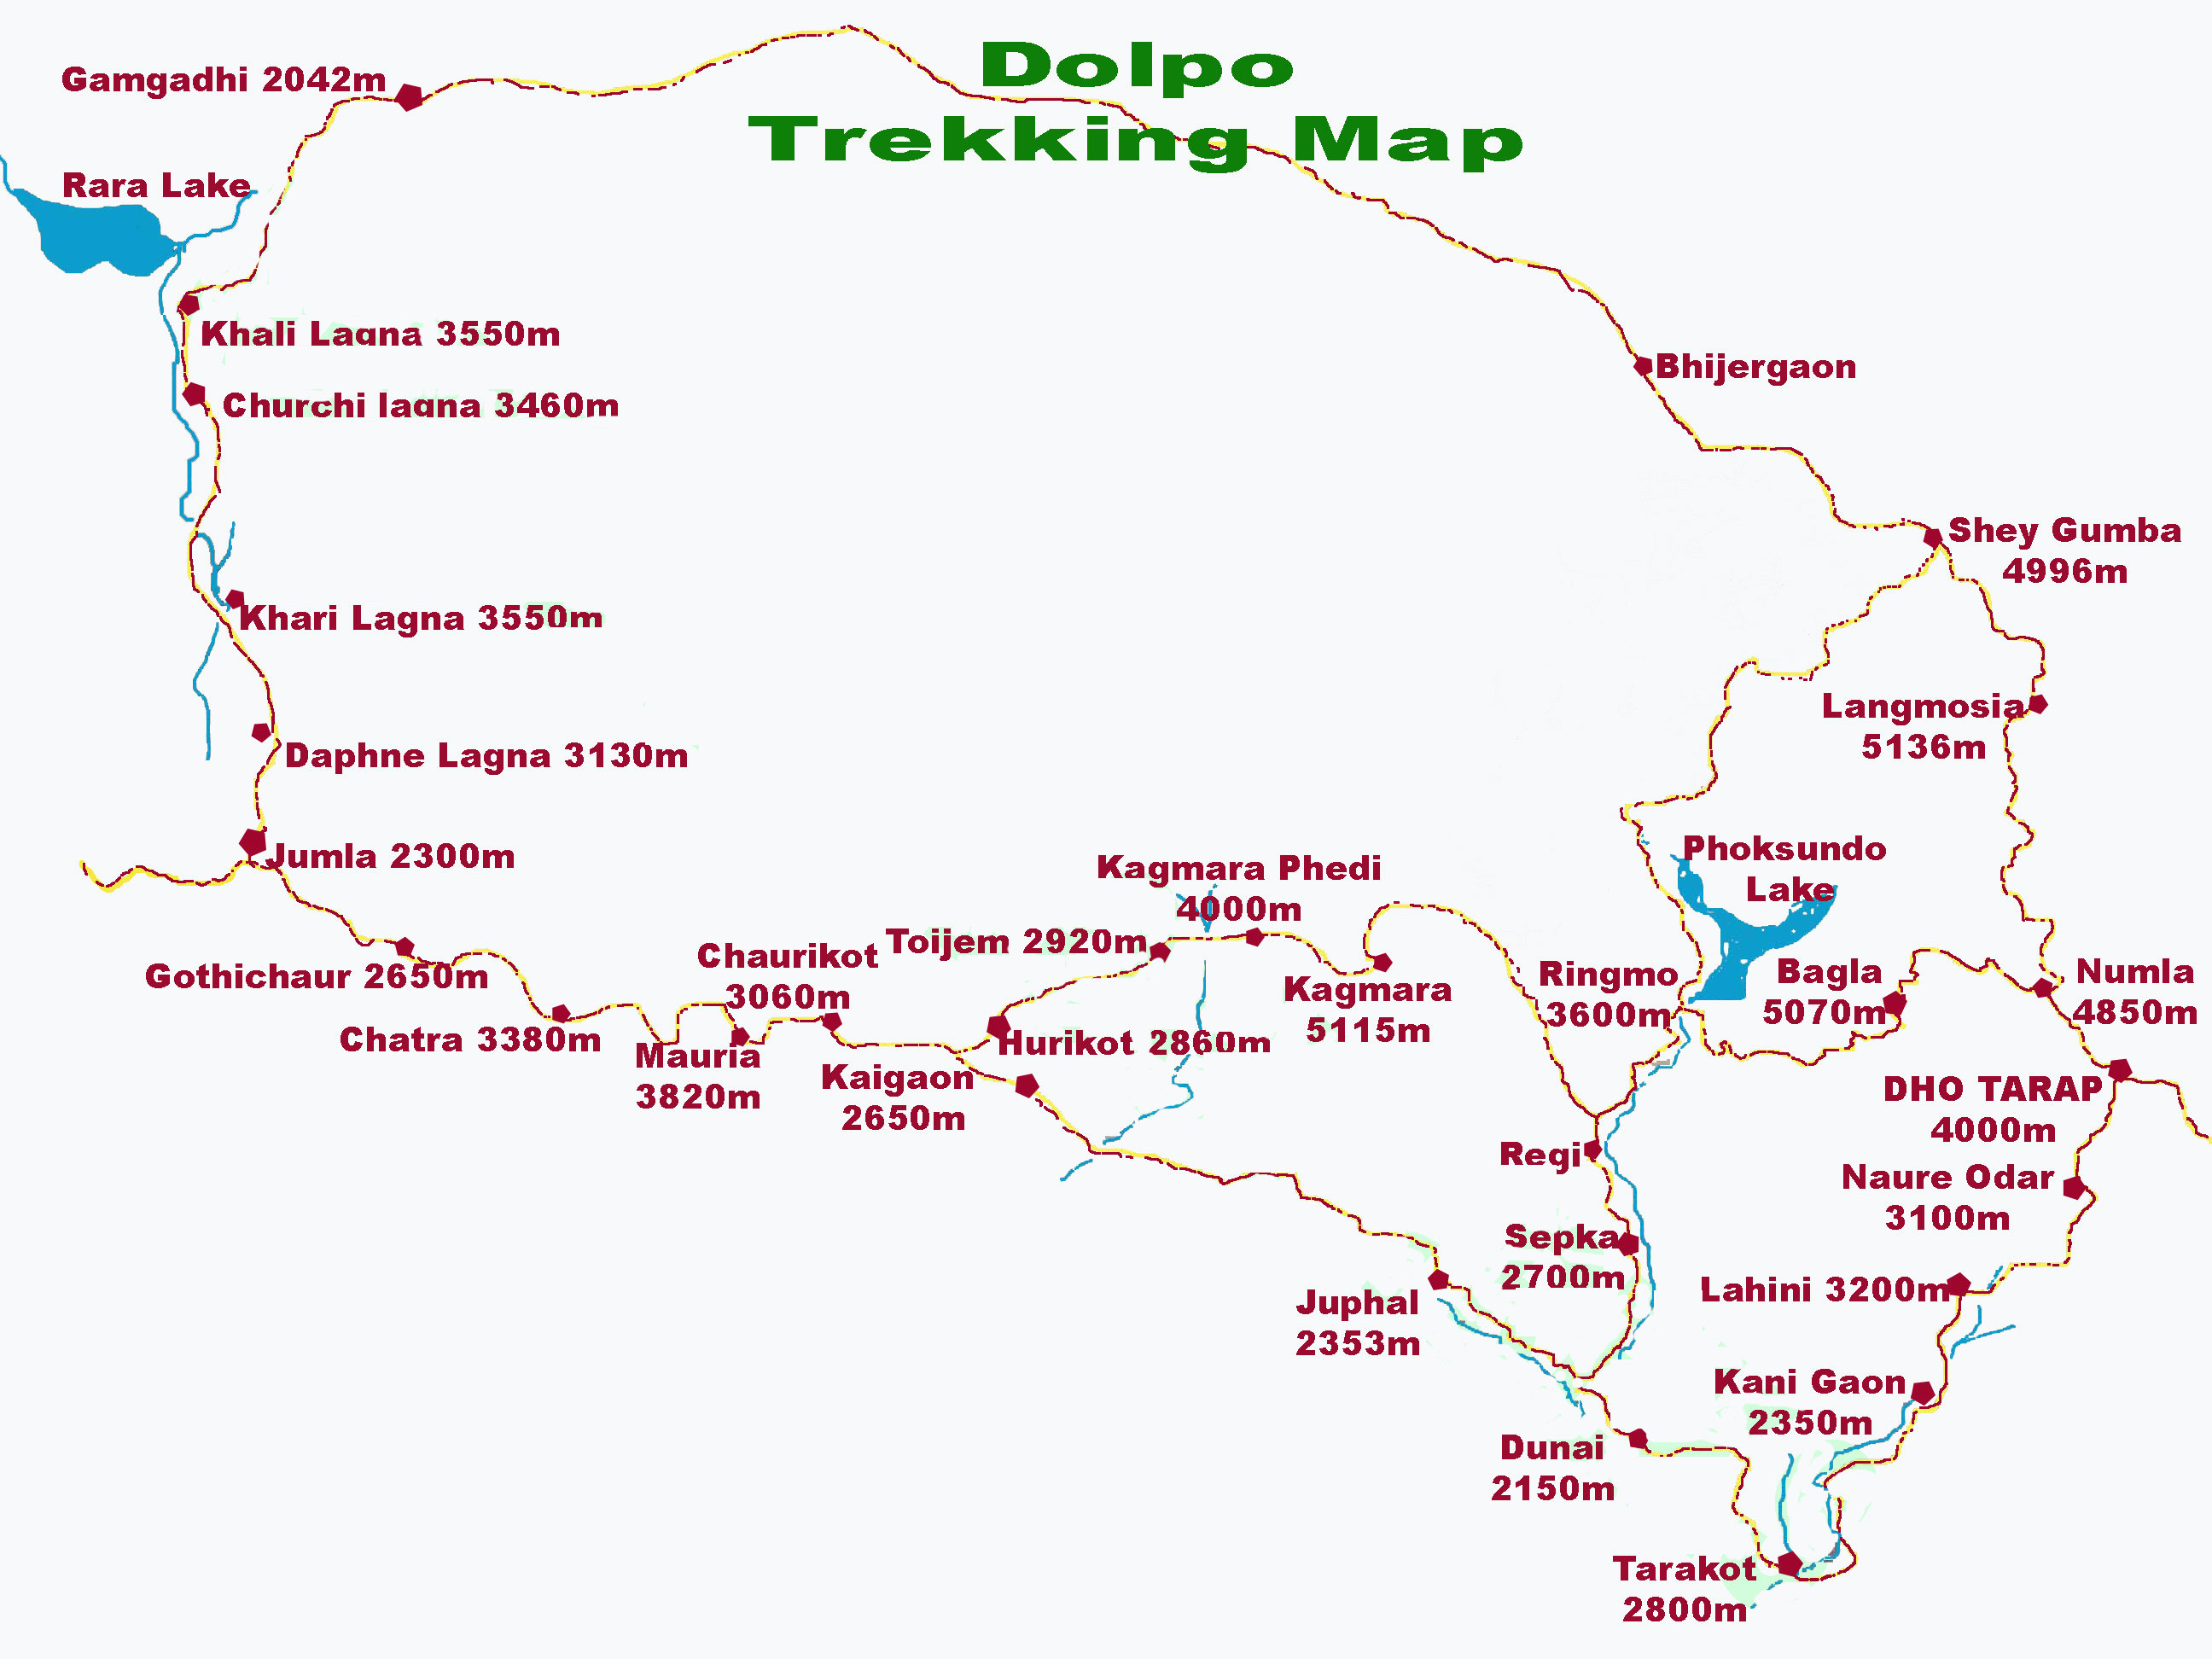 Upper Dolpo Trek 28 Days Map